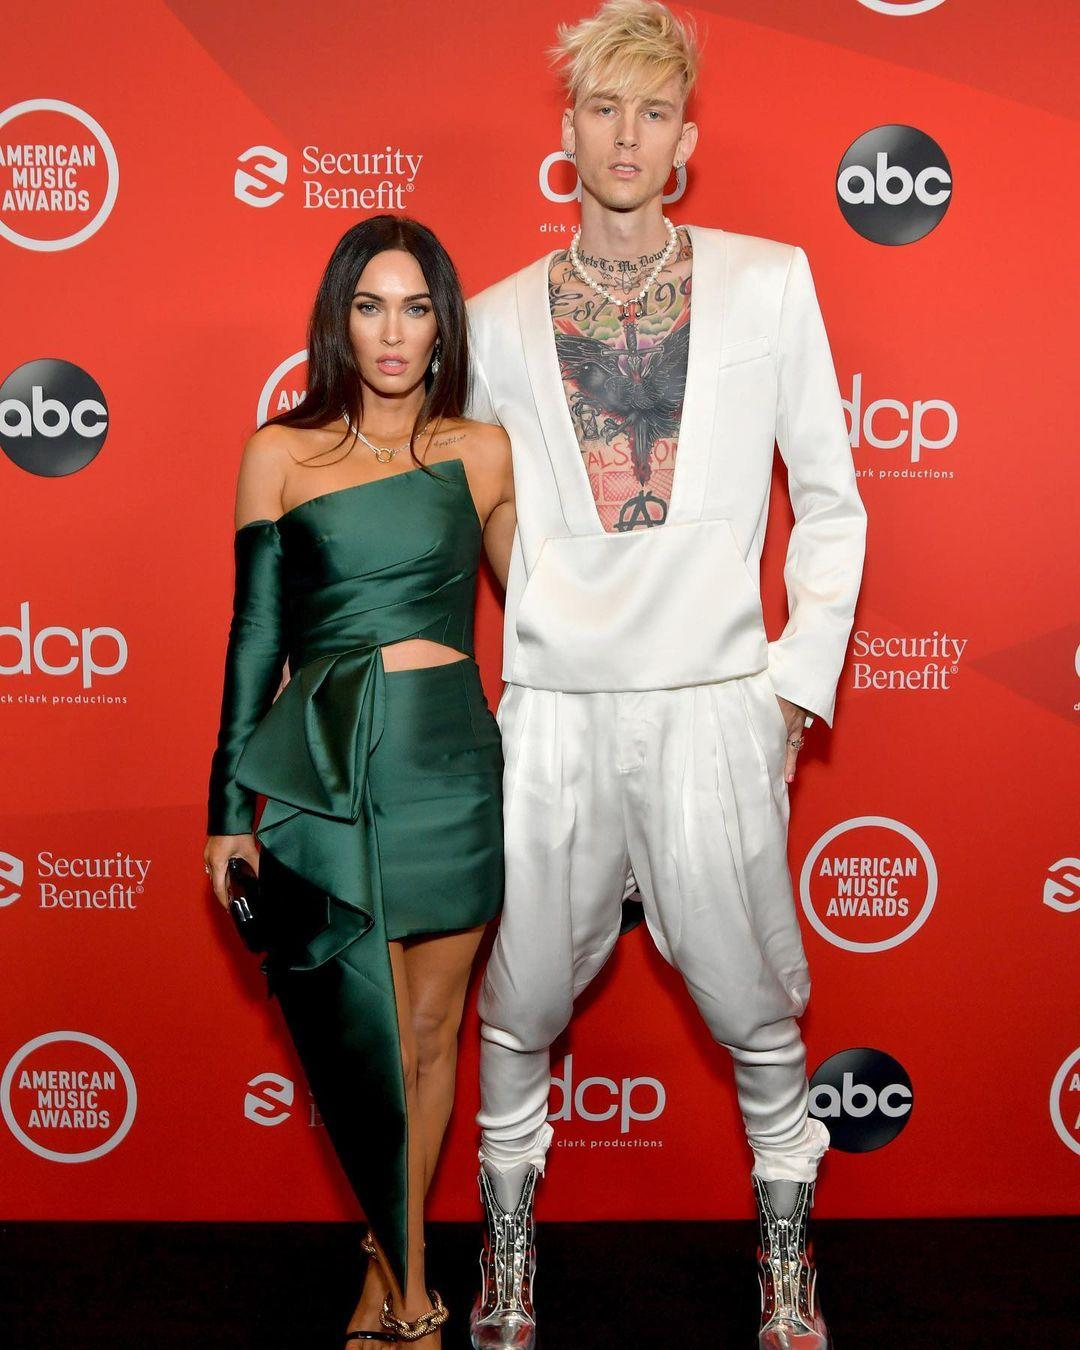 A photo of Machine Gun Kelly and Megan Fox at a red carpet adorned in a white and green color outfit respectively.